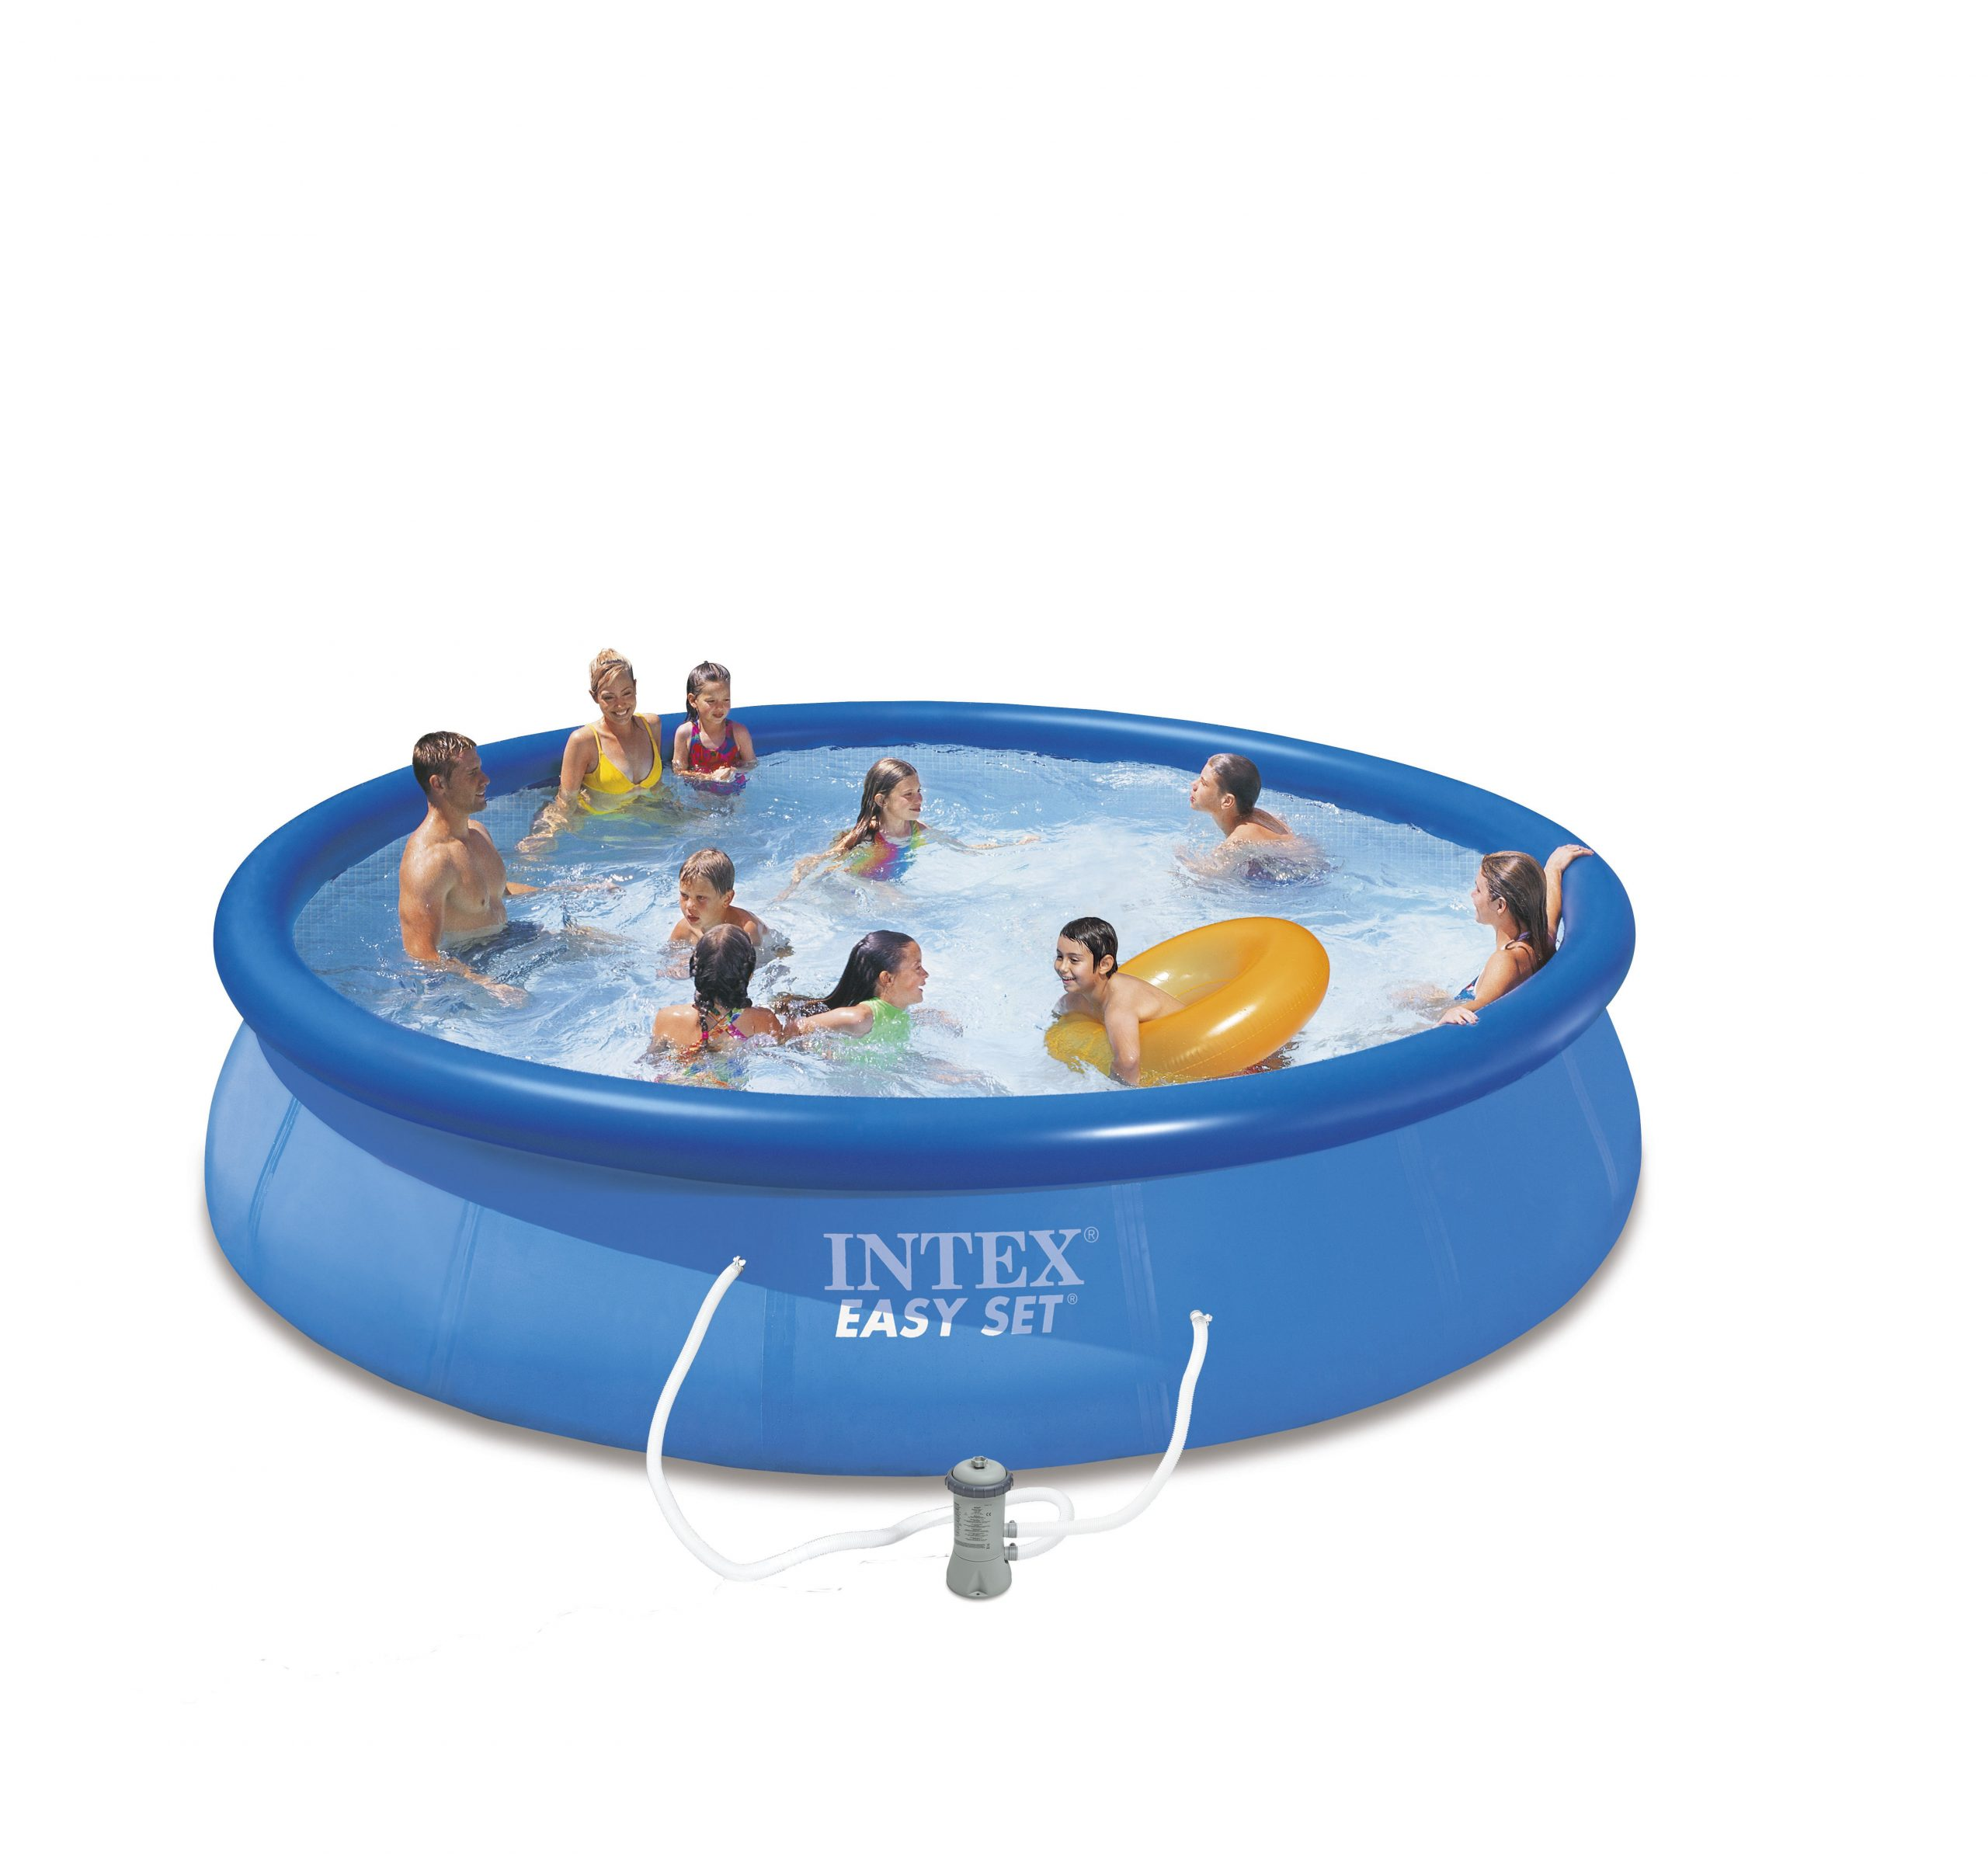 Piscine Autoportante Gonflable Easy Set Intex Diam.4.57 M X H.0.84 M destiné Piscine Autoportée Leroy Merlin